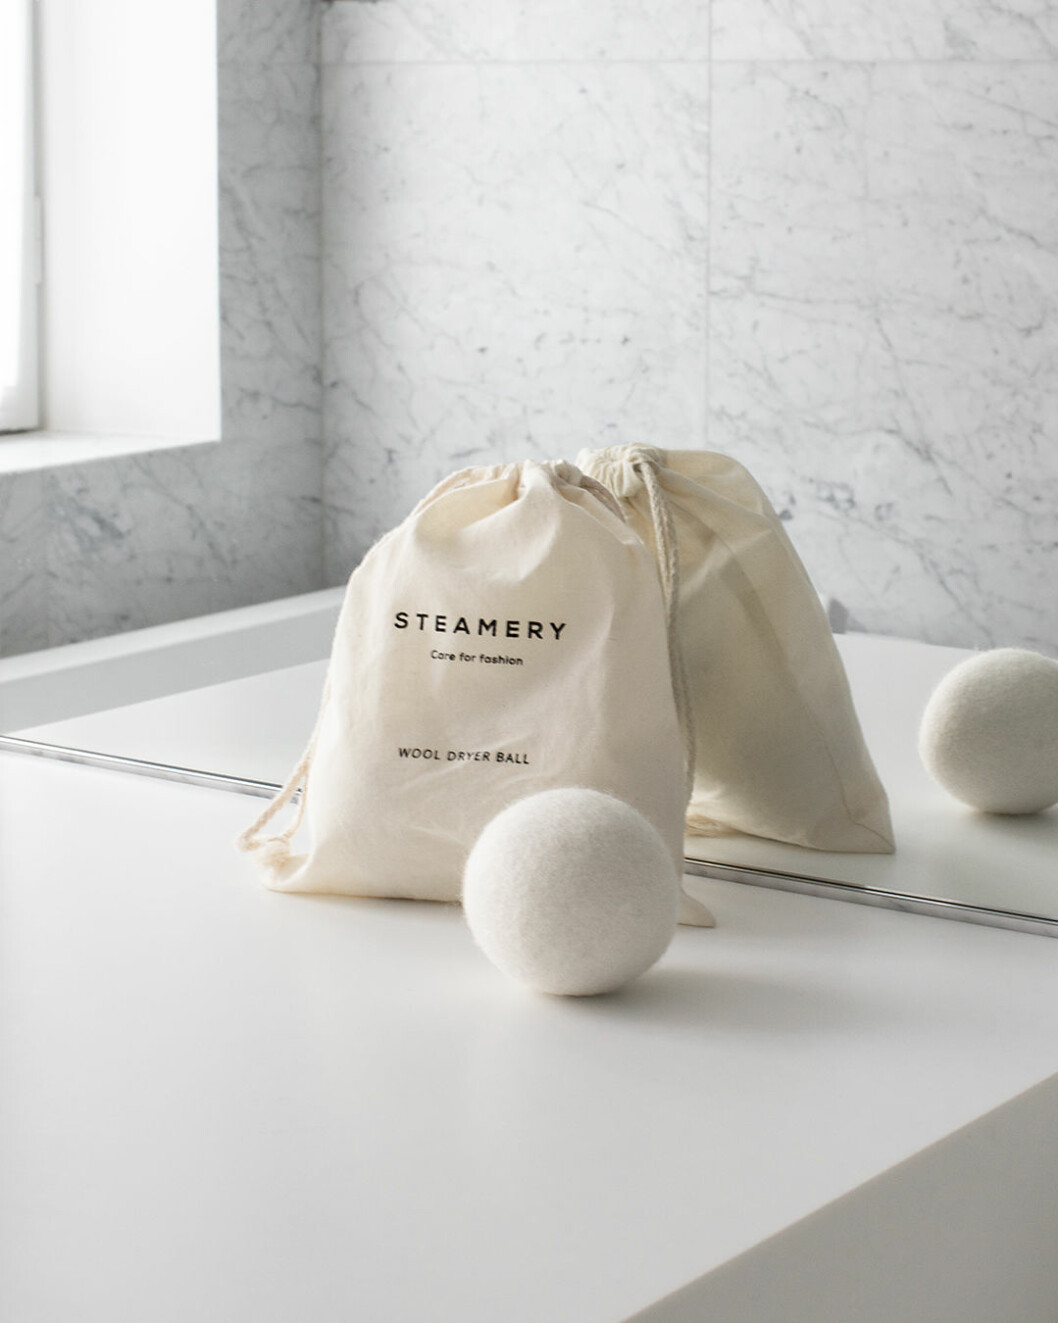 steamery Dryer ball